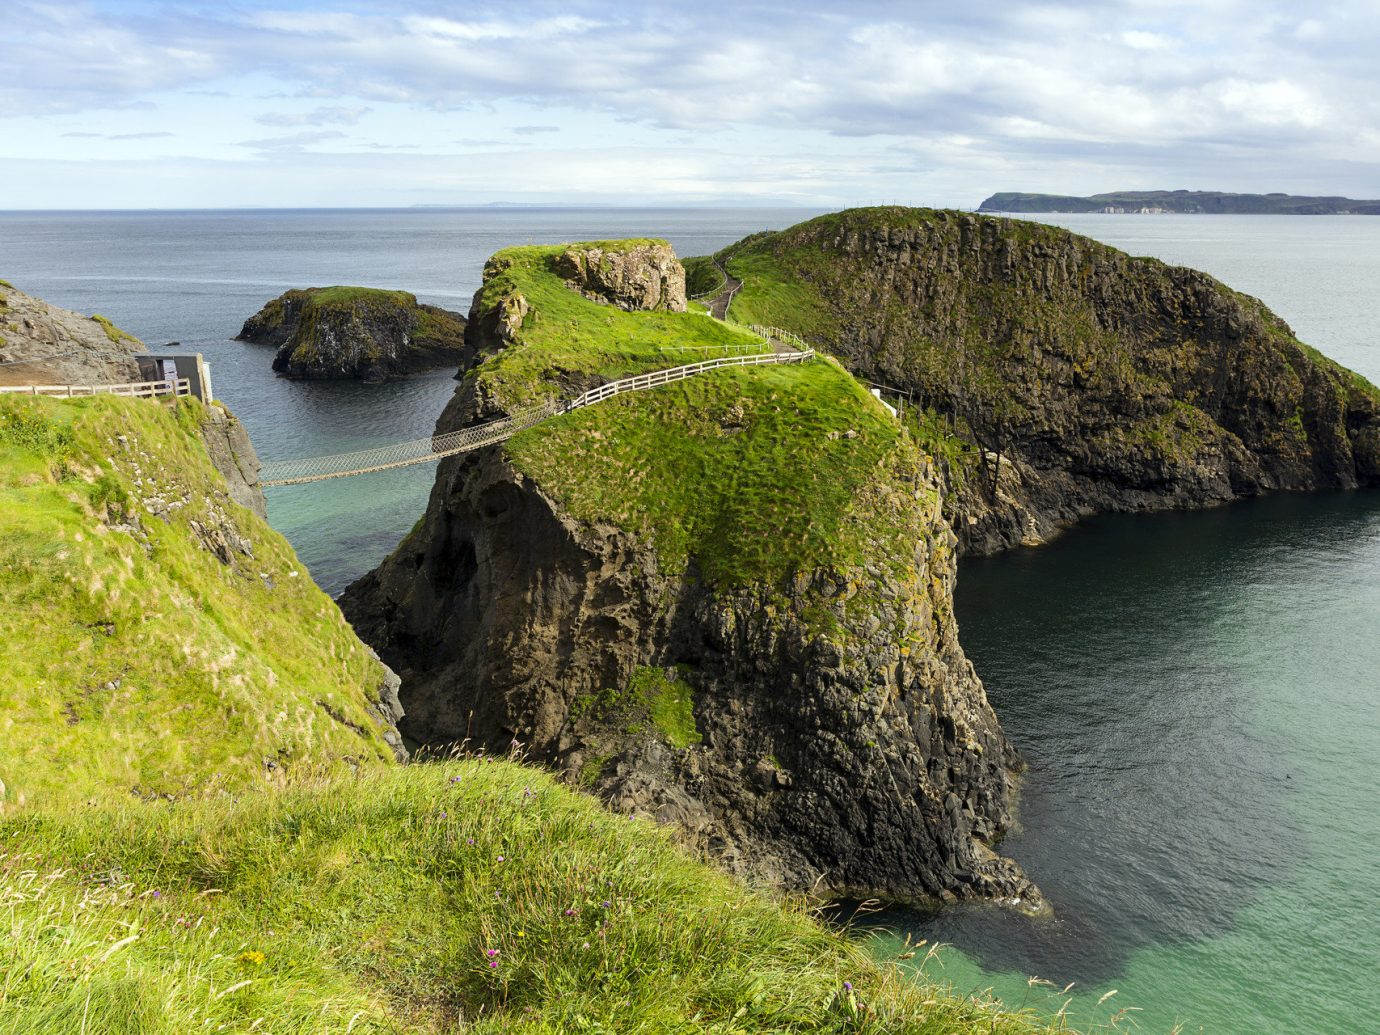 Carrick-a-Rede Rope Bridge Offbeat outdoor water sky grass Coast cliff rock Nature shore Sea landform geographical feature mountain body of water Ocean green terrain rocky bay islet Beach cove hill bridge cape Island landscape waterway stack hillside overlooking lush